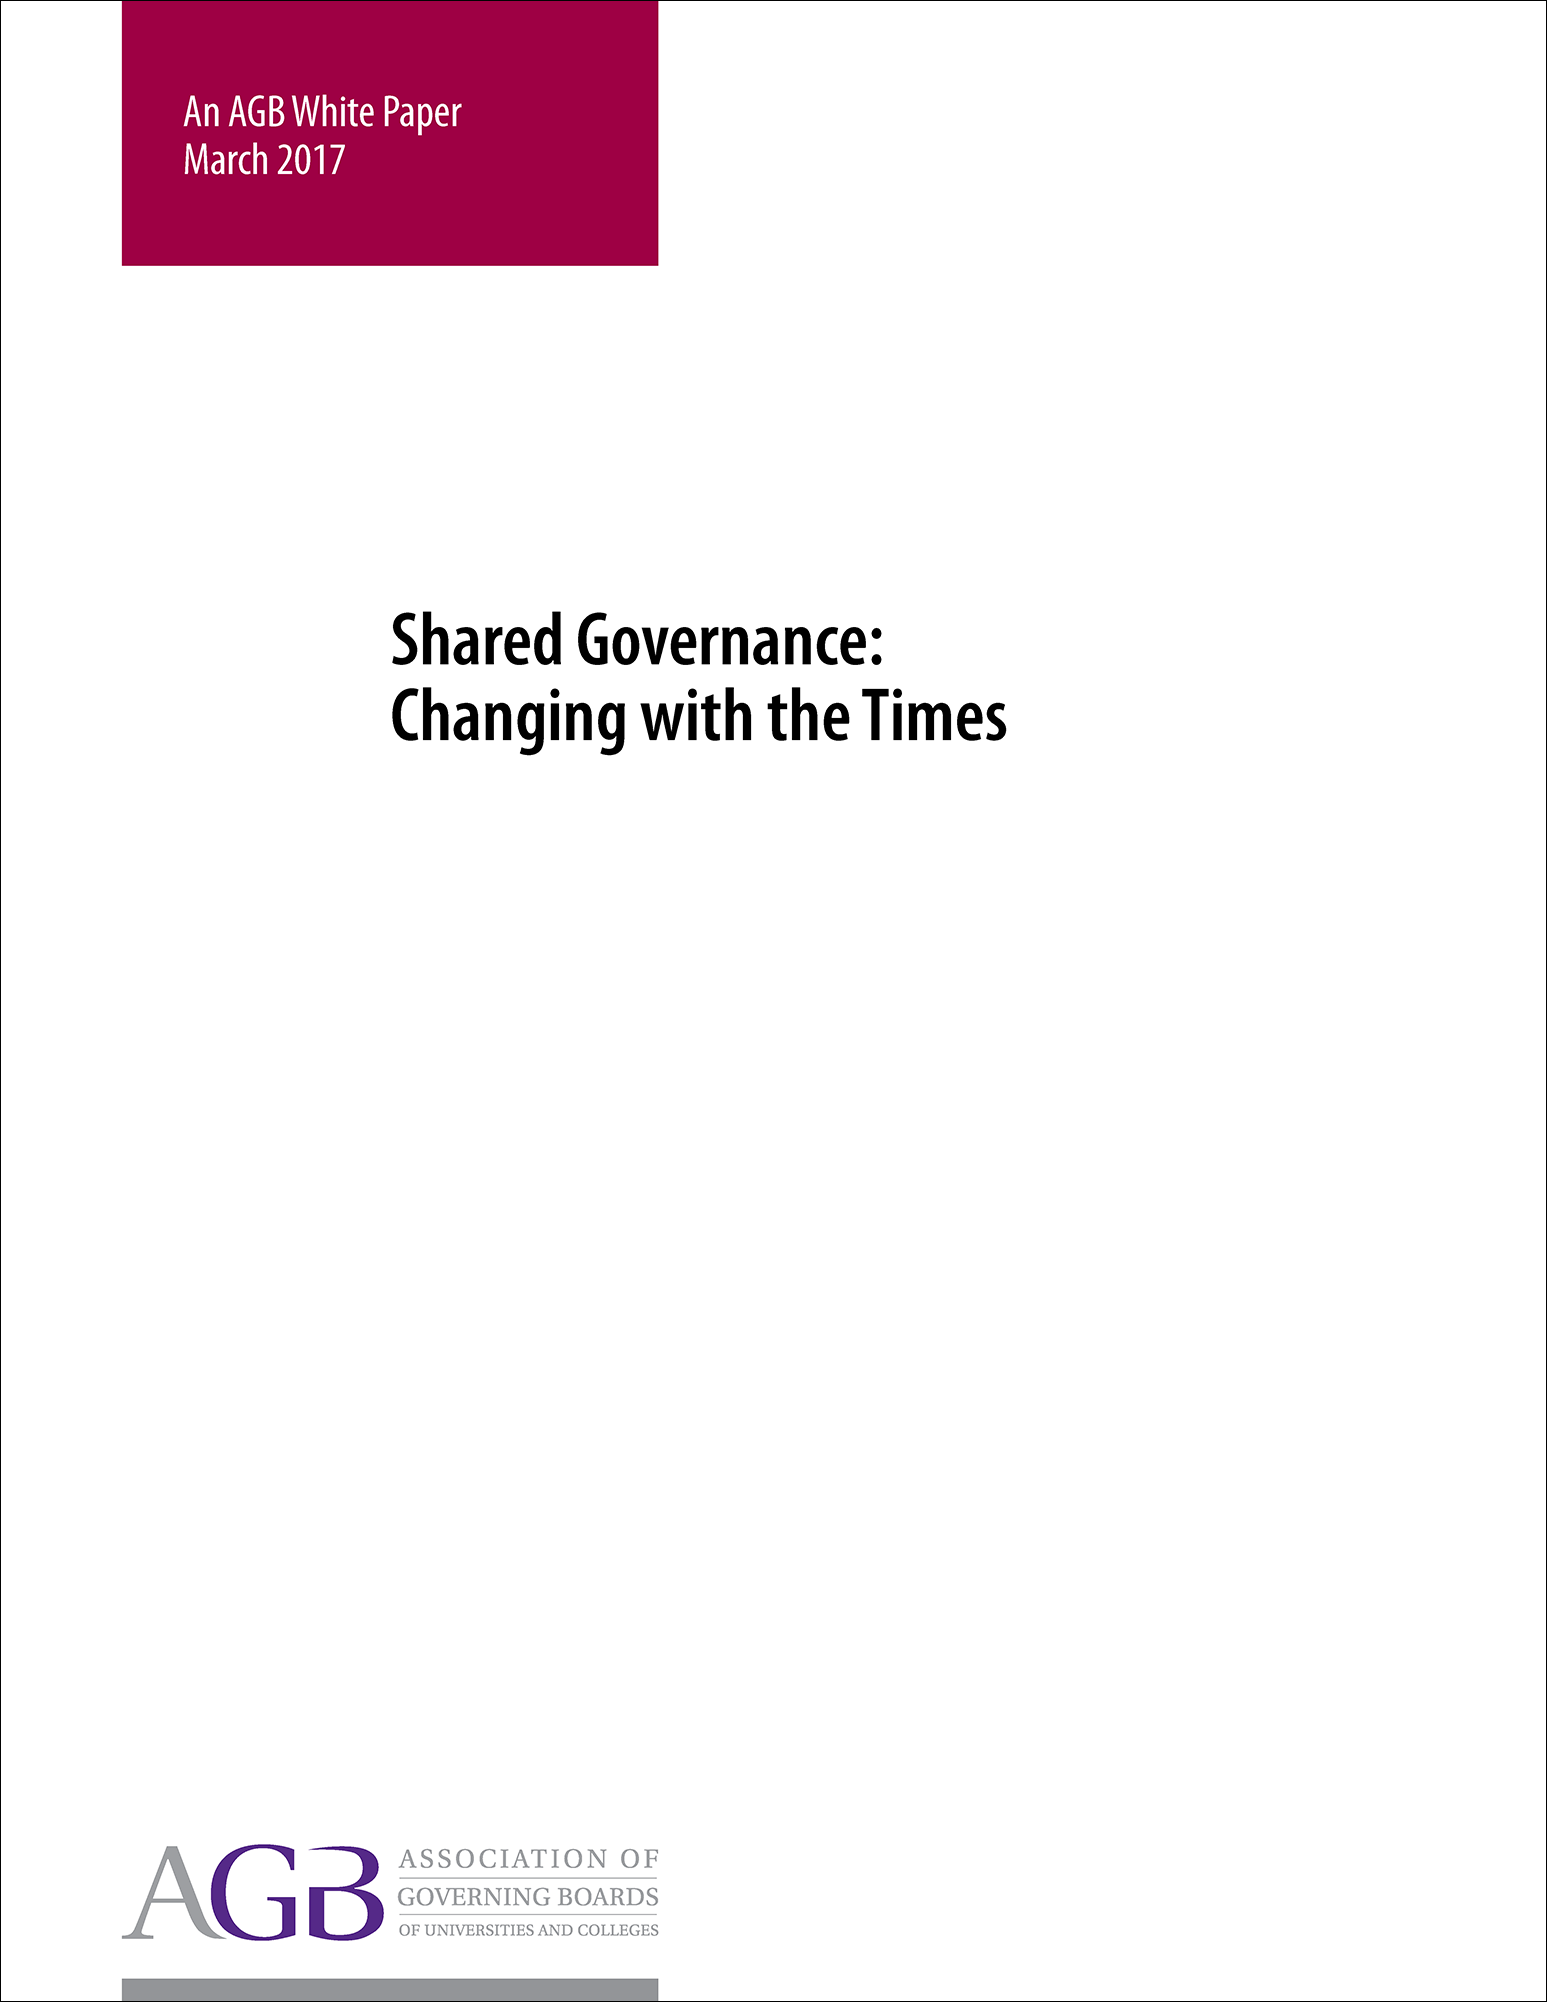 Shared Governance: Changing with the Times